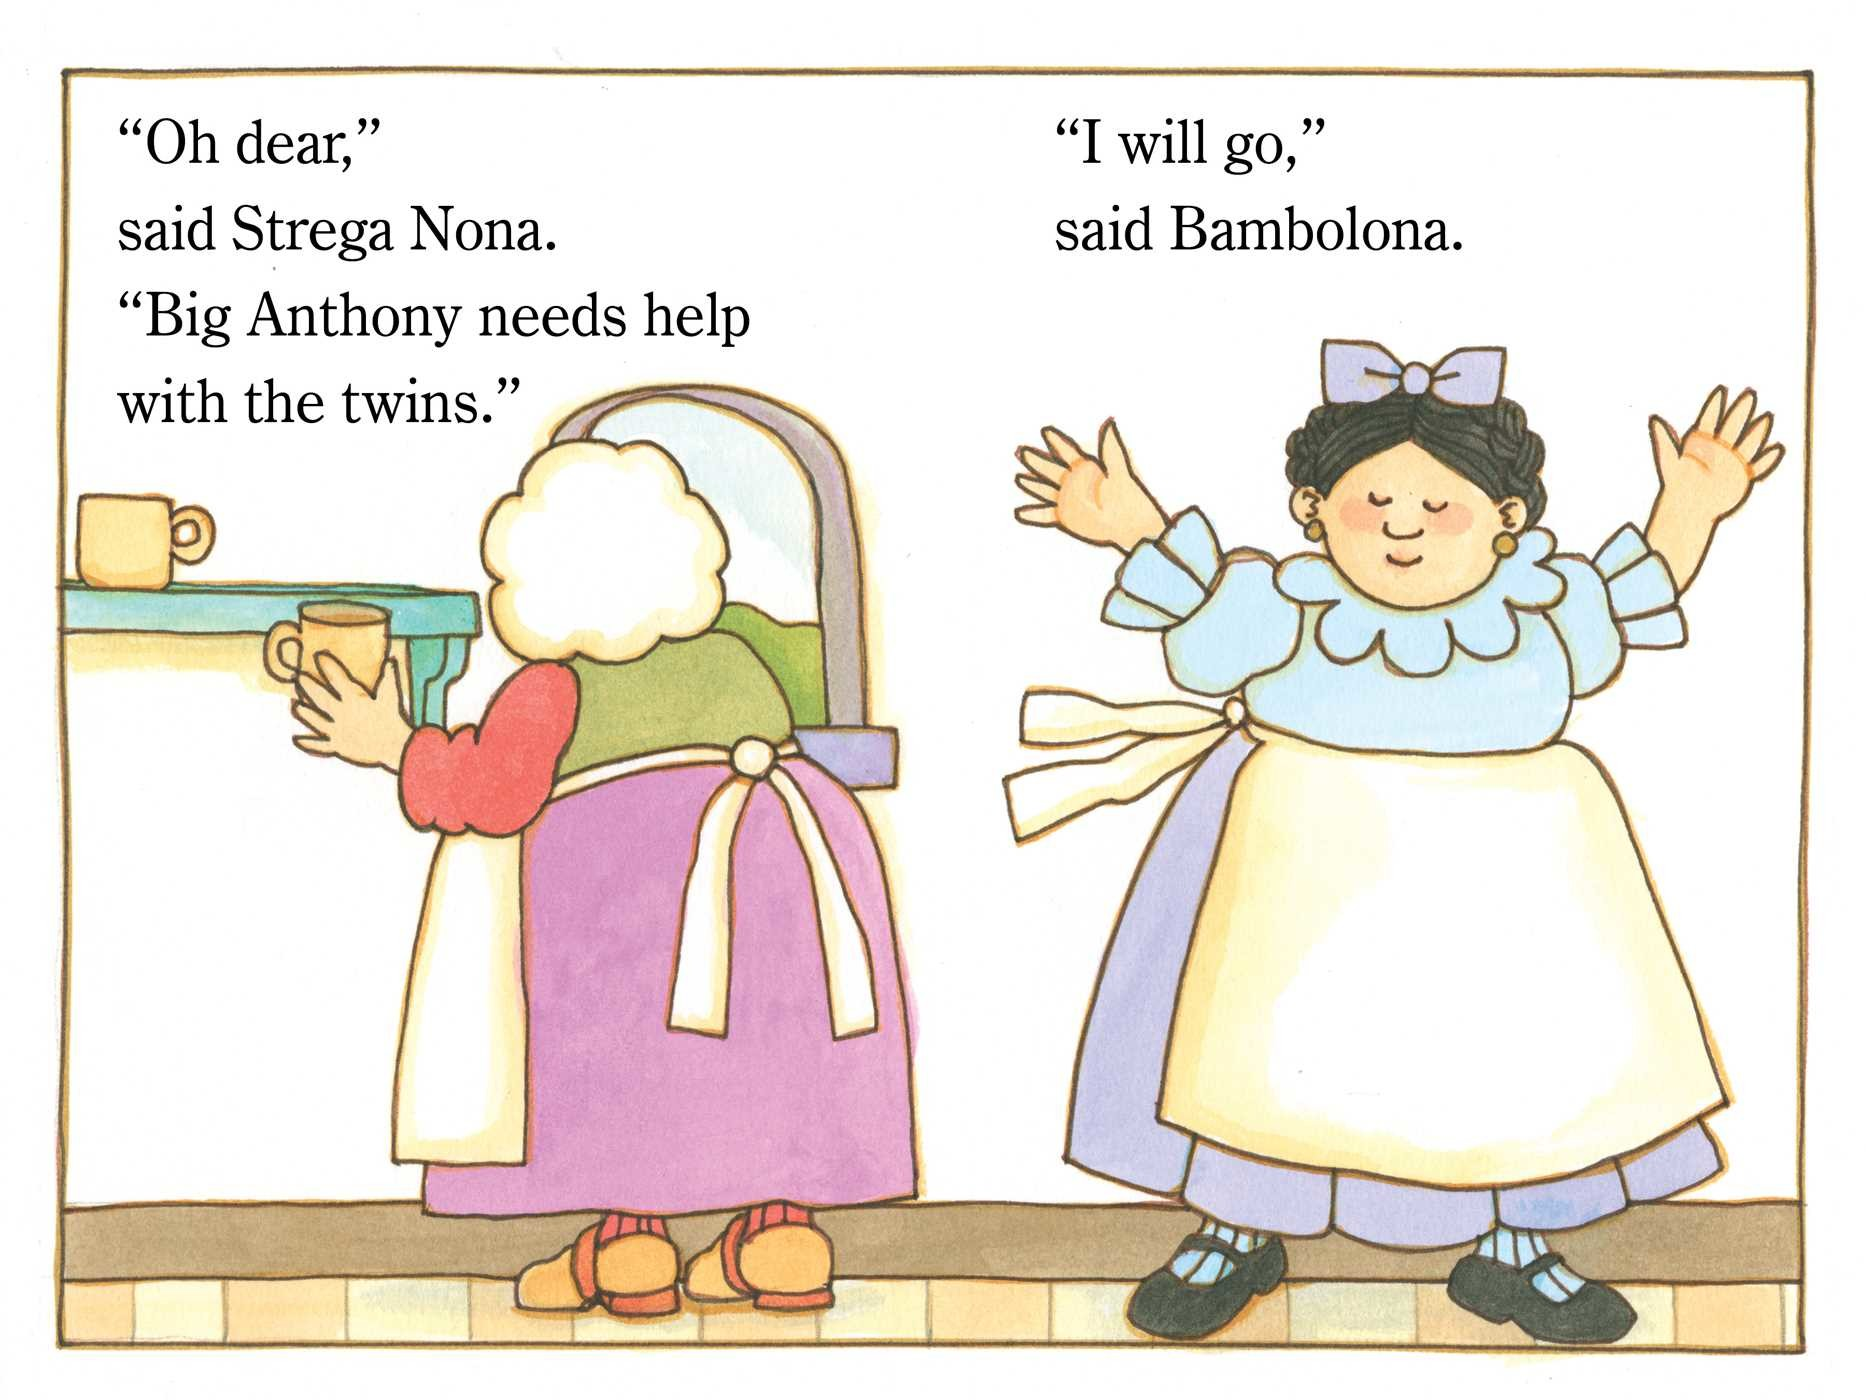 Strega nona and the twins 9781481481373.in03